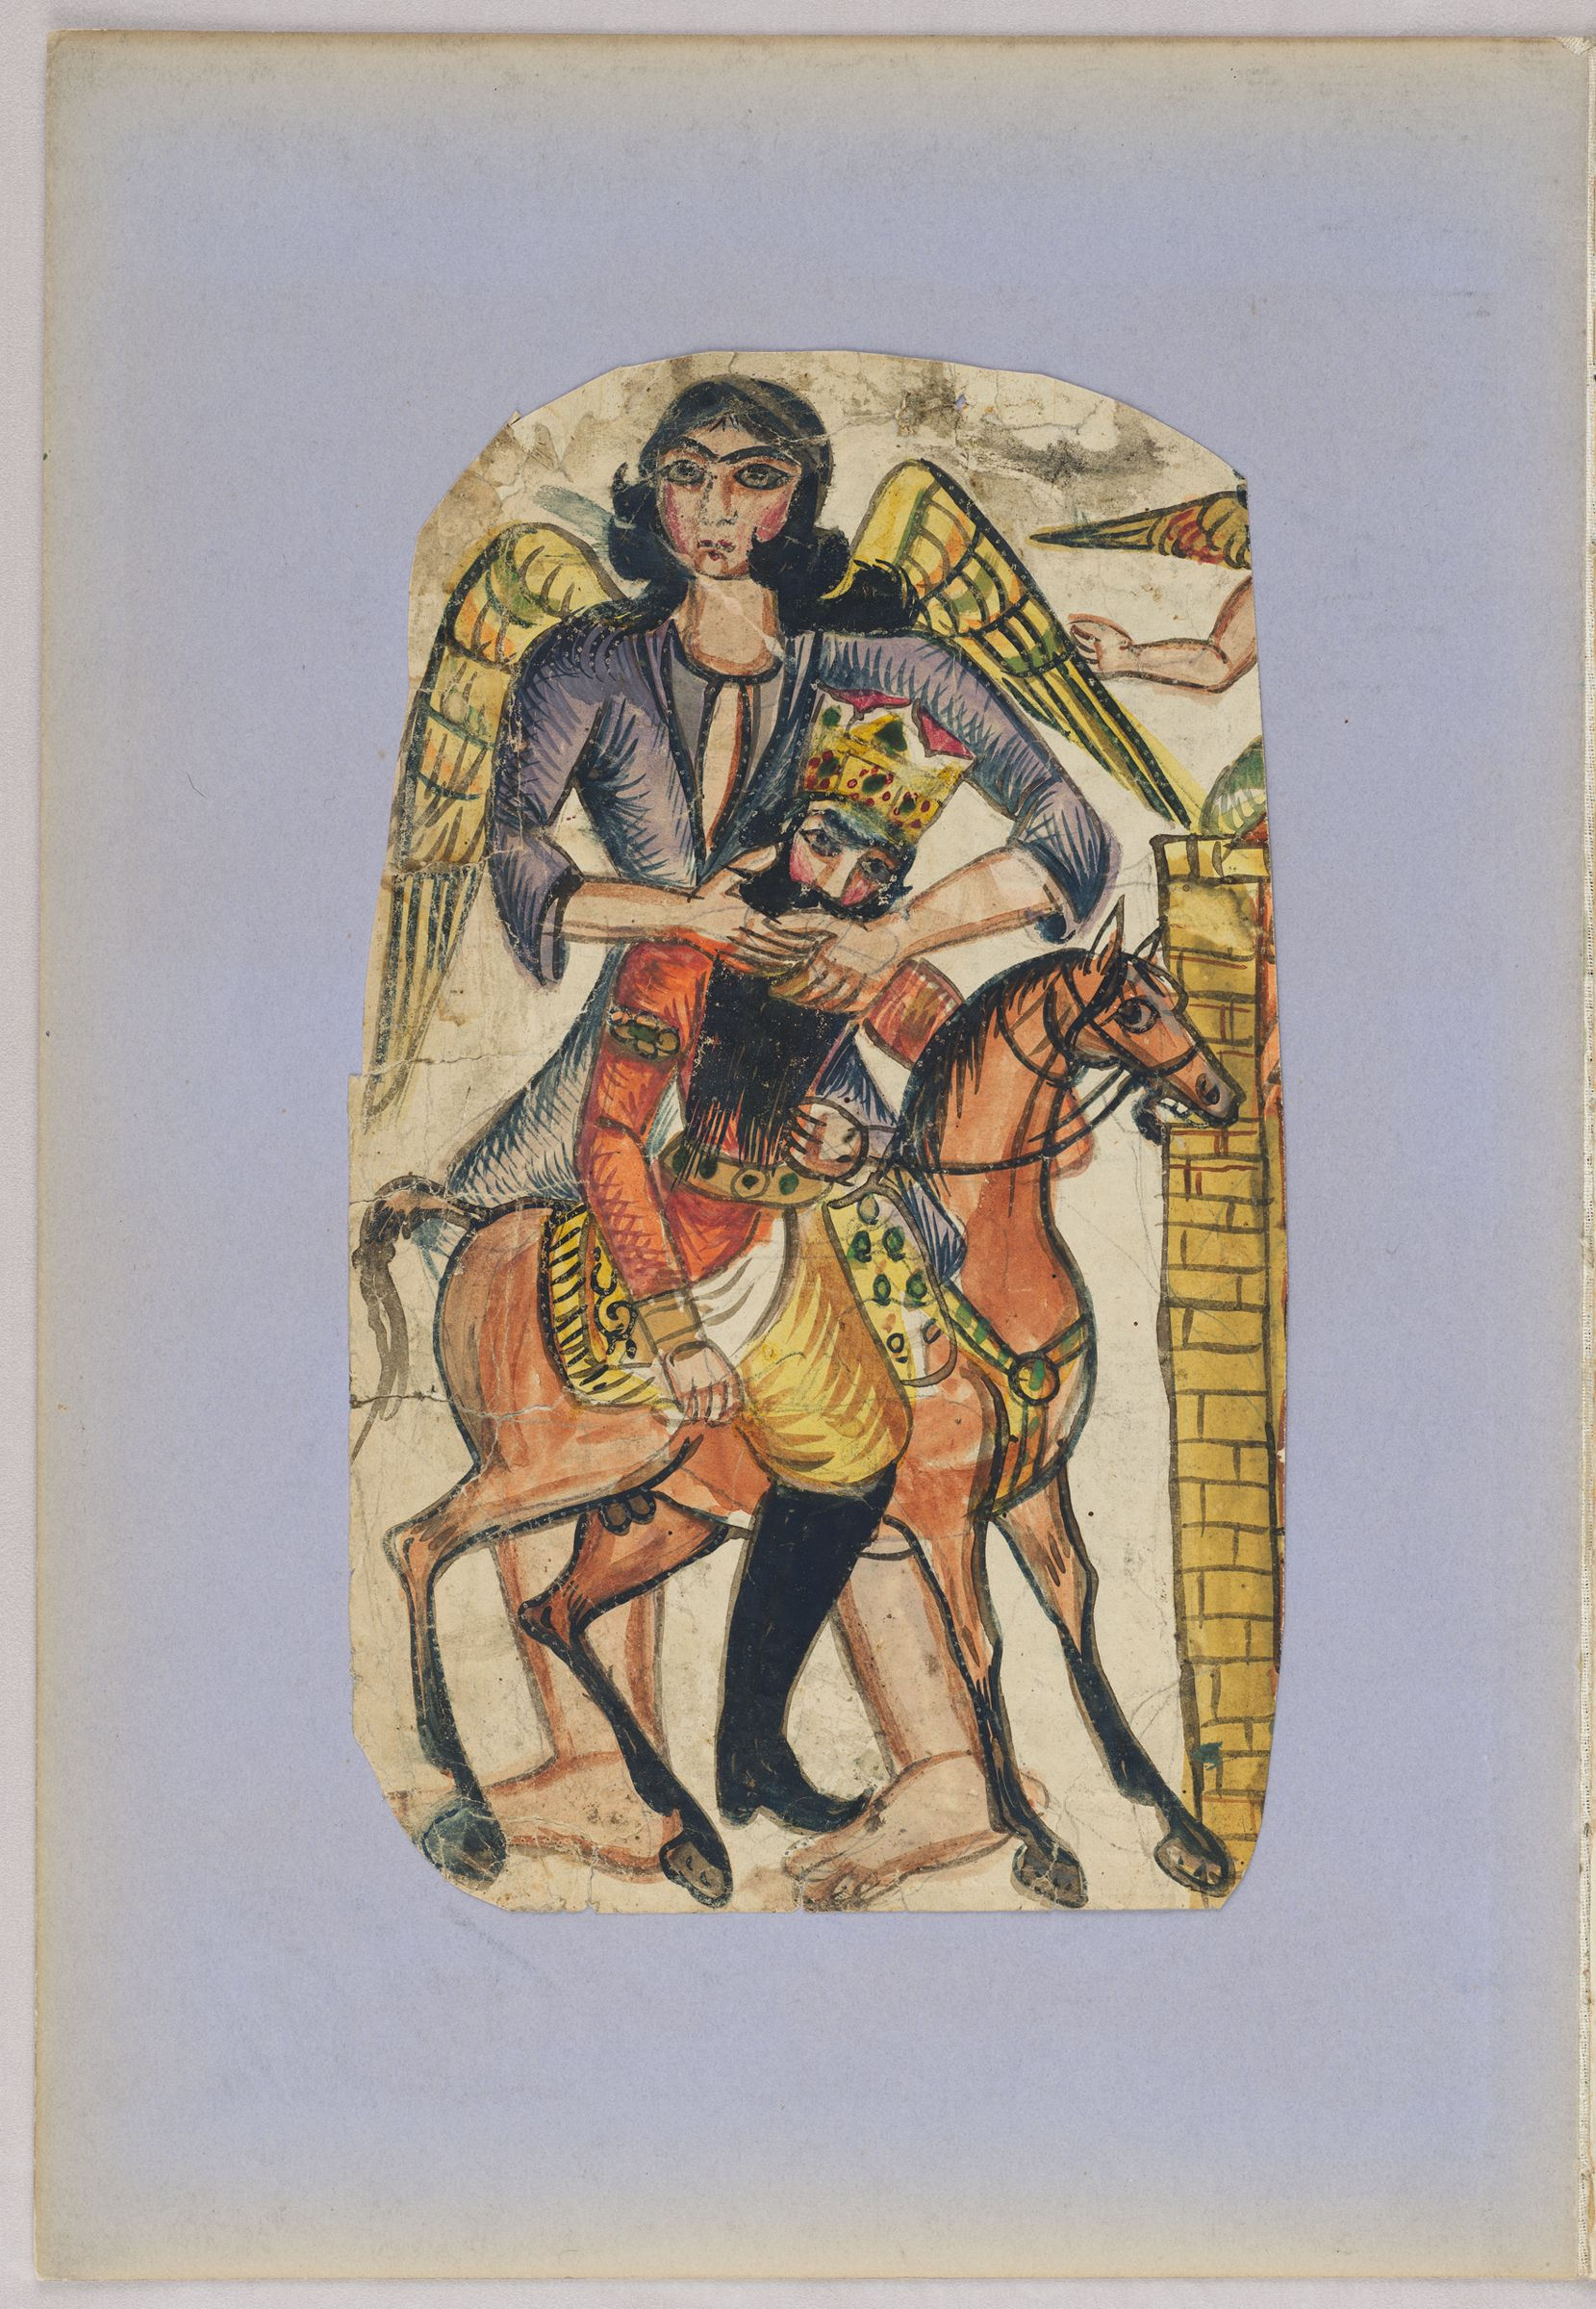 Folio 52 From An Album Of Drawings And Paintings: King On Horseback Embraced By Angel (Recto); Bust Portrait Of A Young Woman, Probably Pourandokht, With Tiara And Headscarves (Verso)